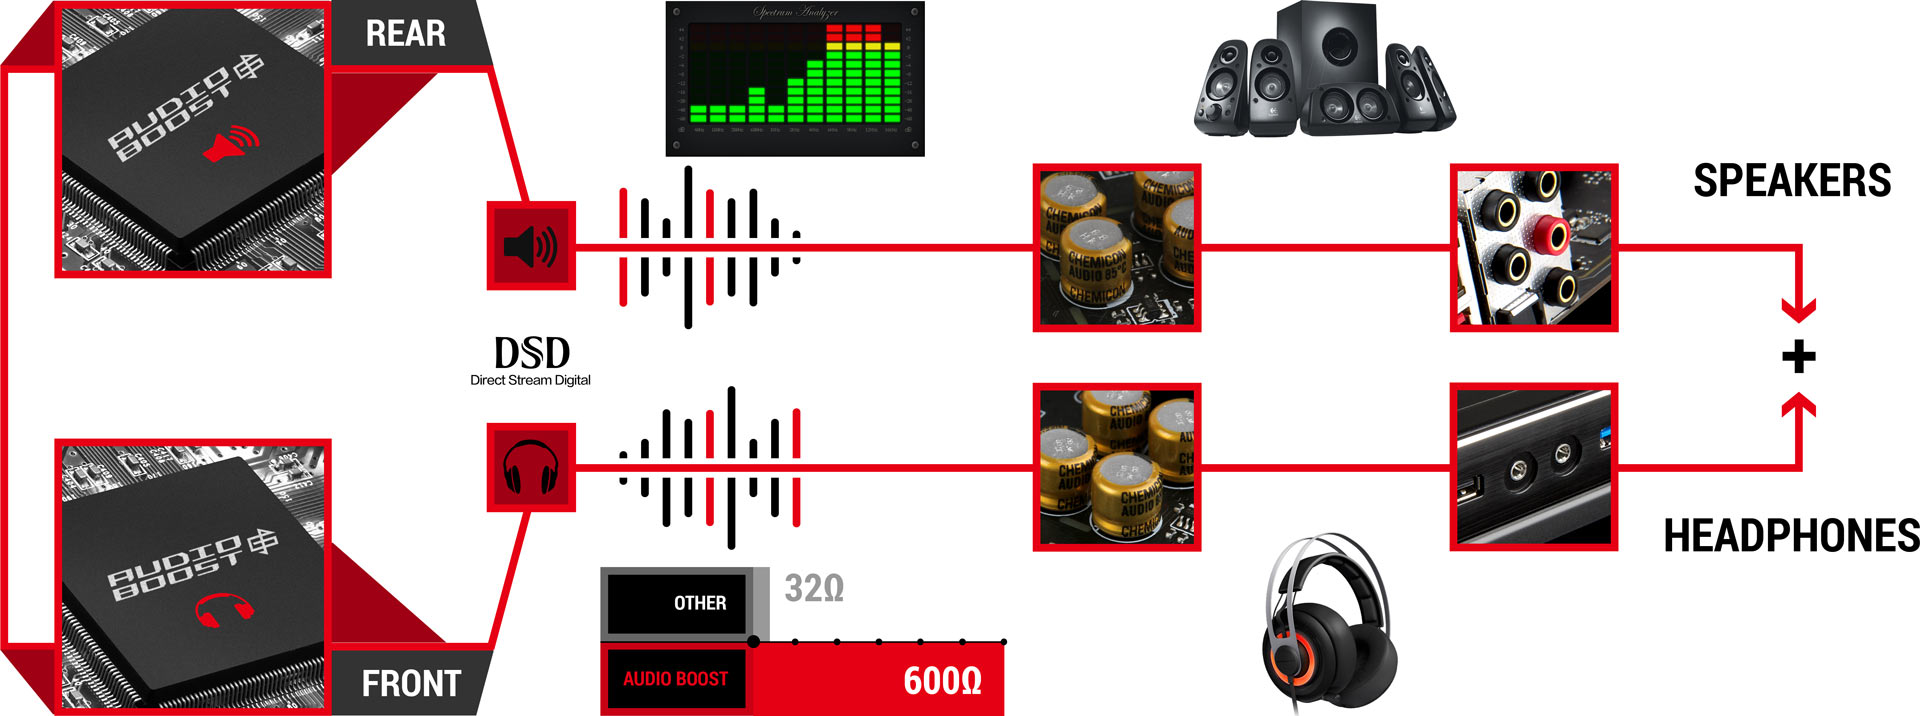 Audio Boost 4 Pro front and rear